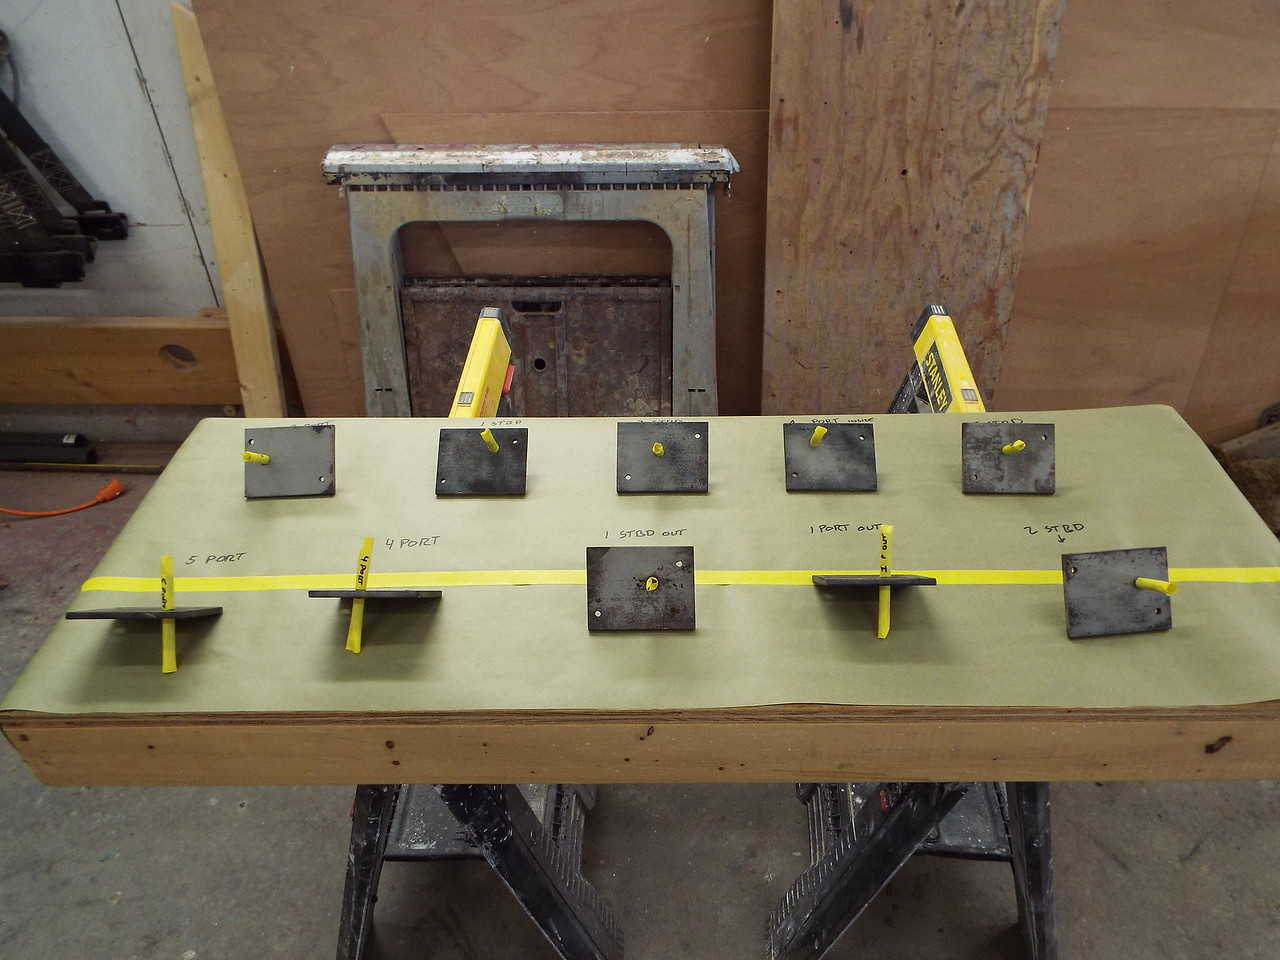 Another view of the seat brackets.